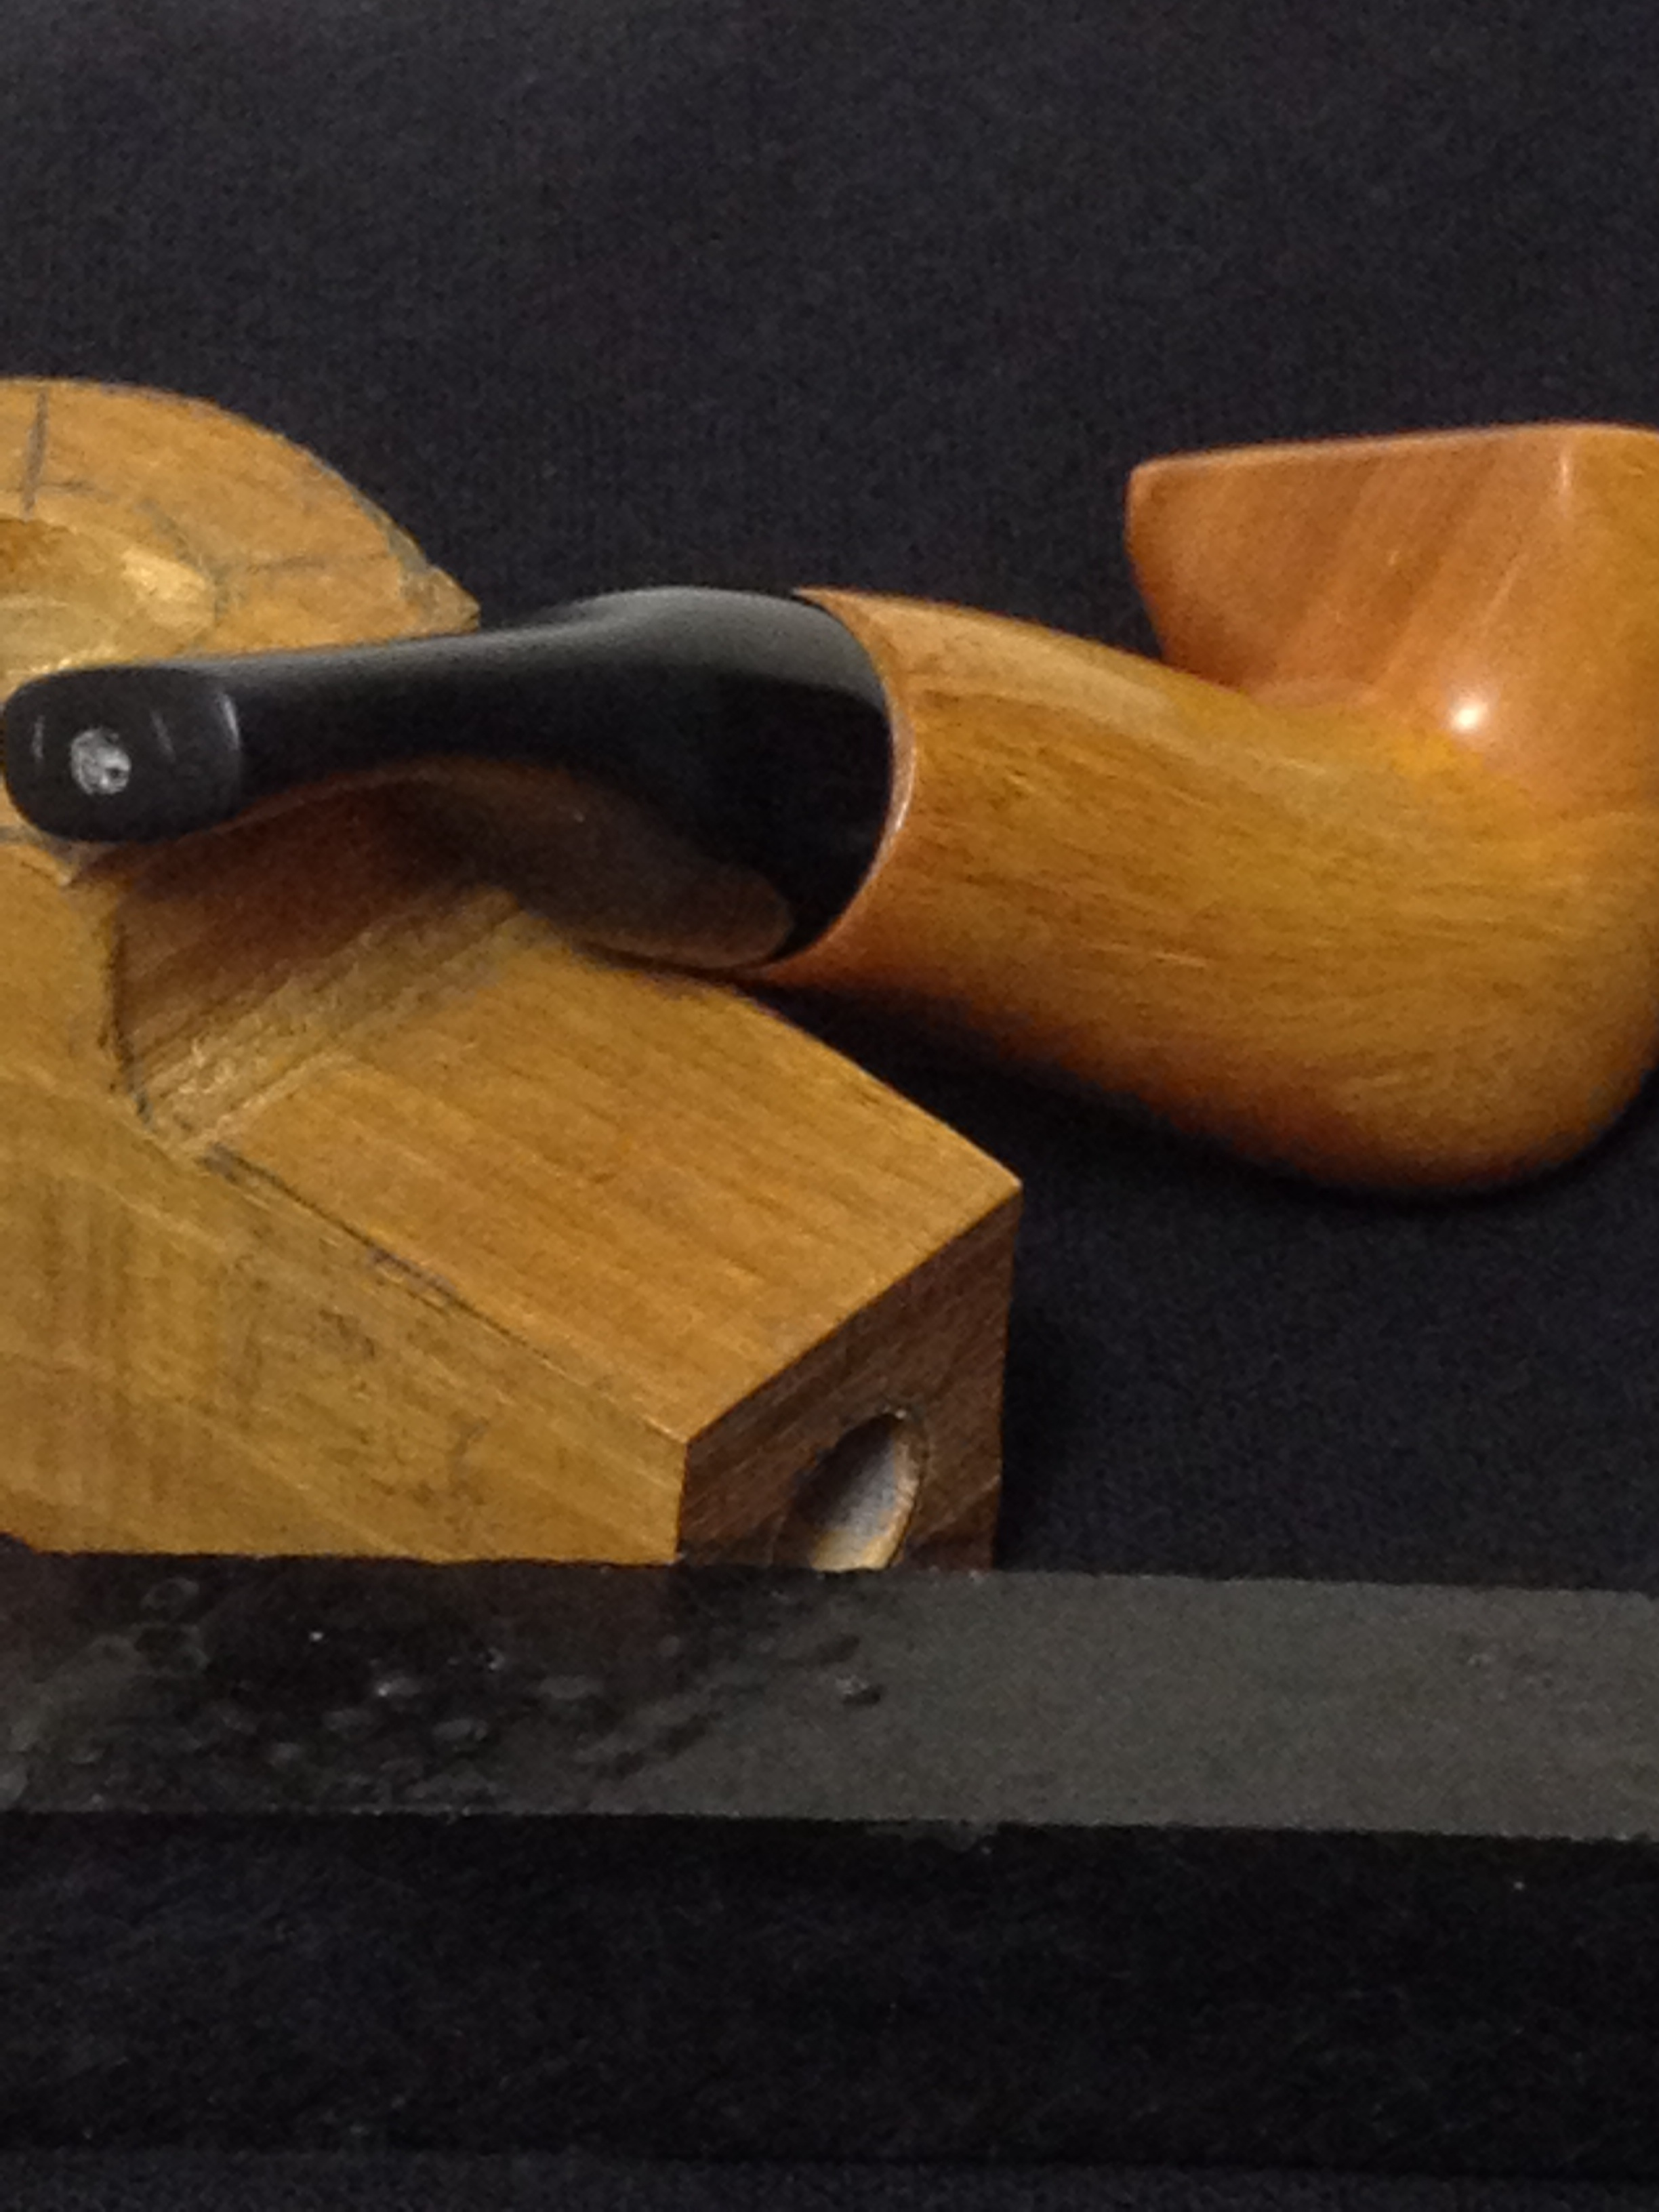 Making a Pipe (Part 2): The Stem